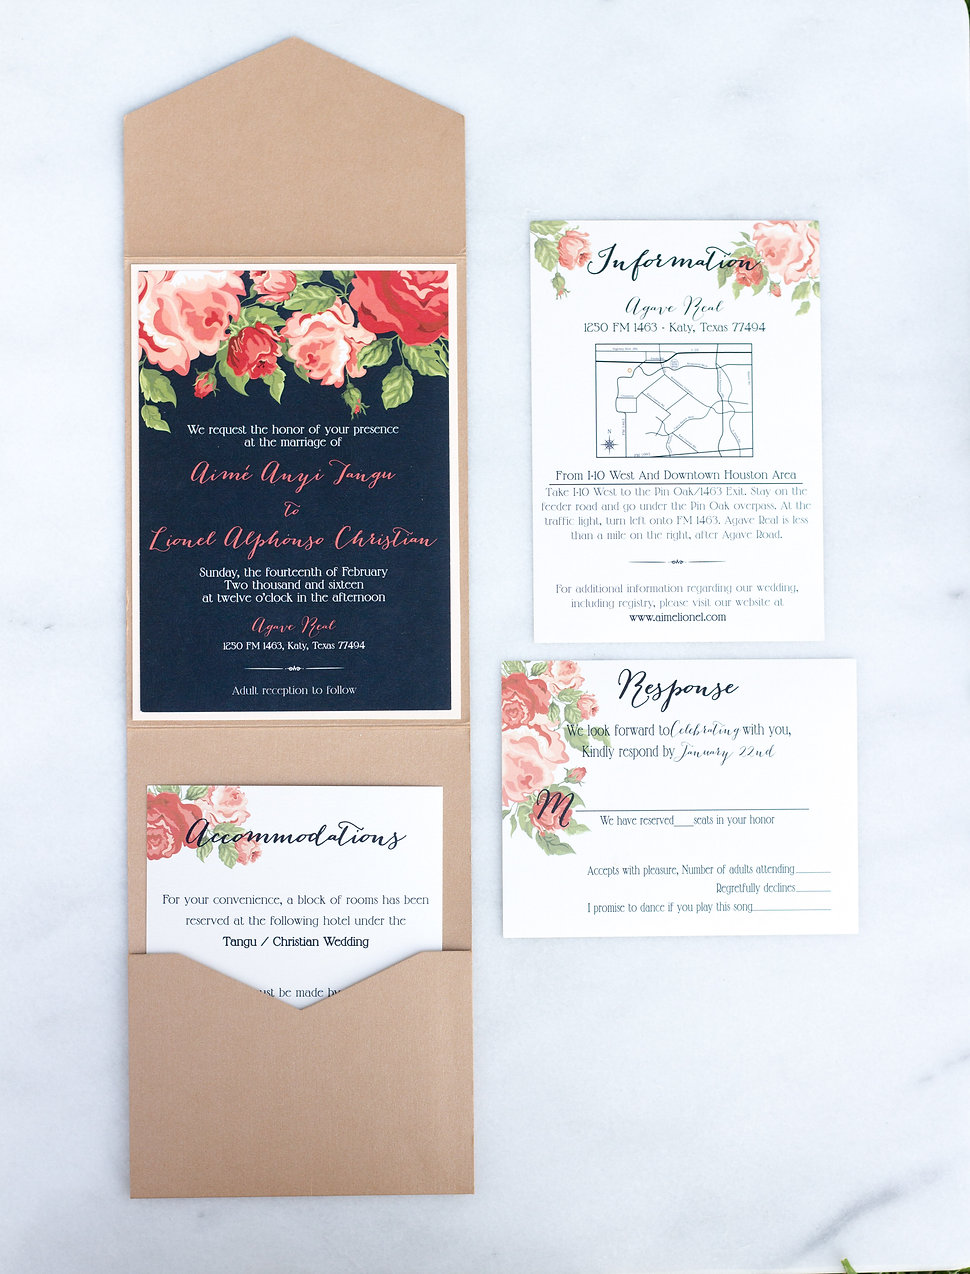 Wedding Invitations In Houston Tx Image collections Wedding and